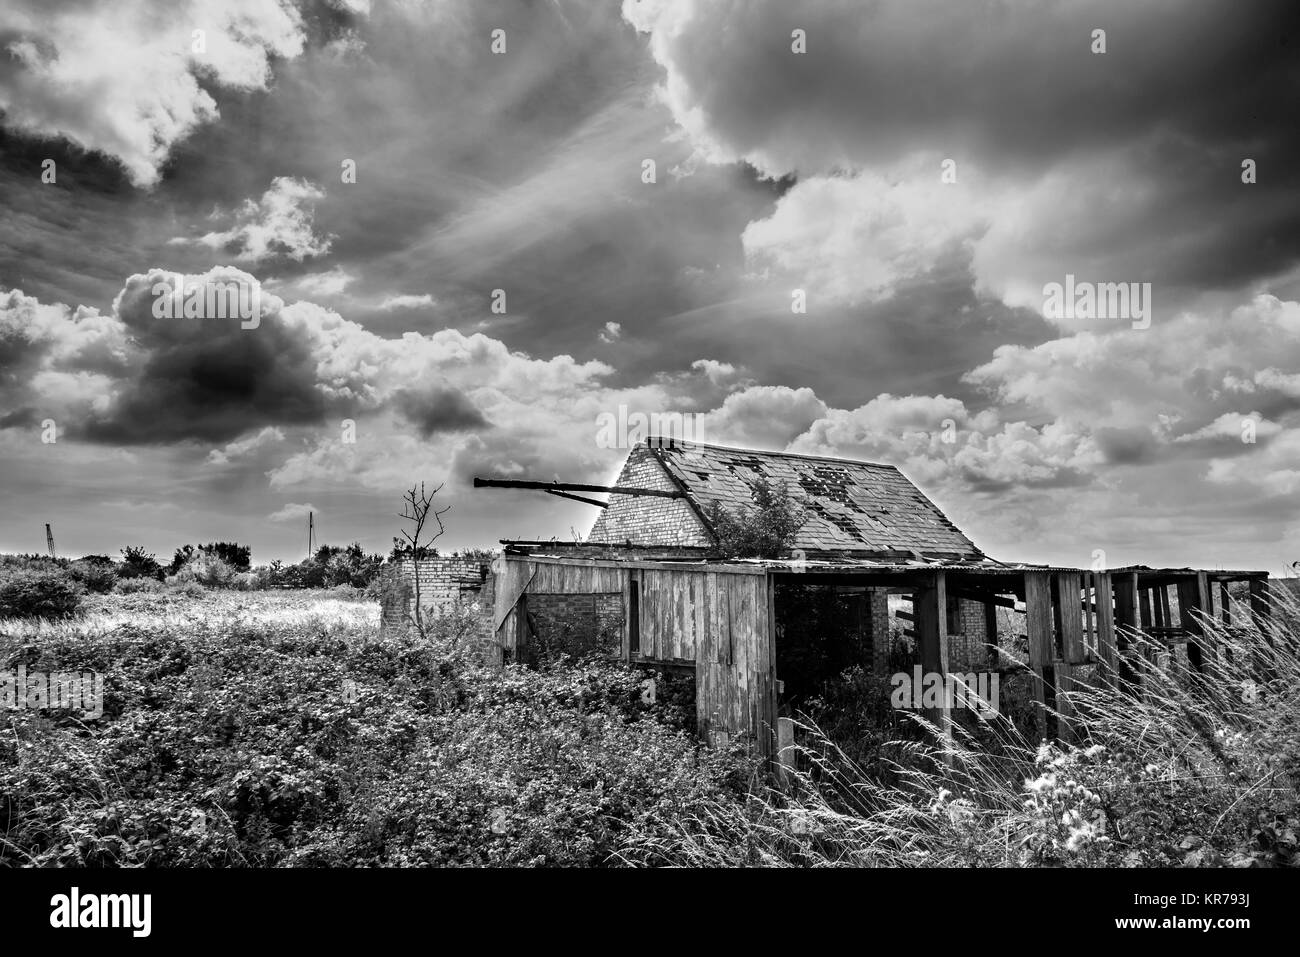 Black and White Photograph of Old Farm - Stock Image